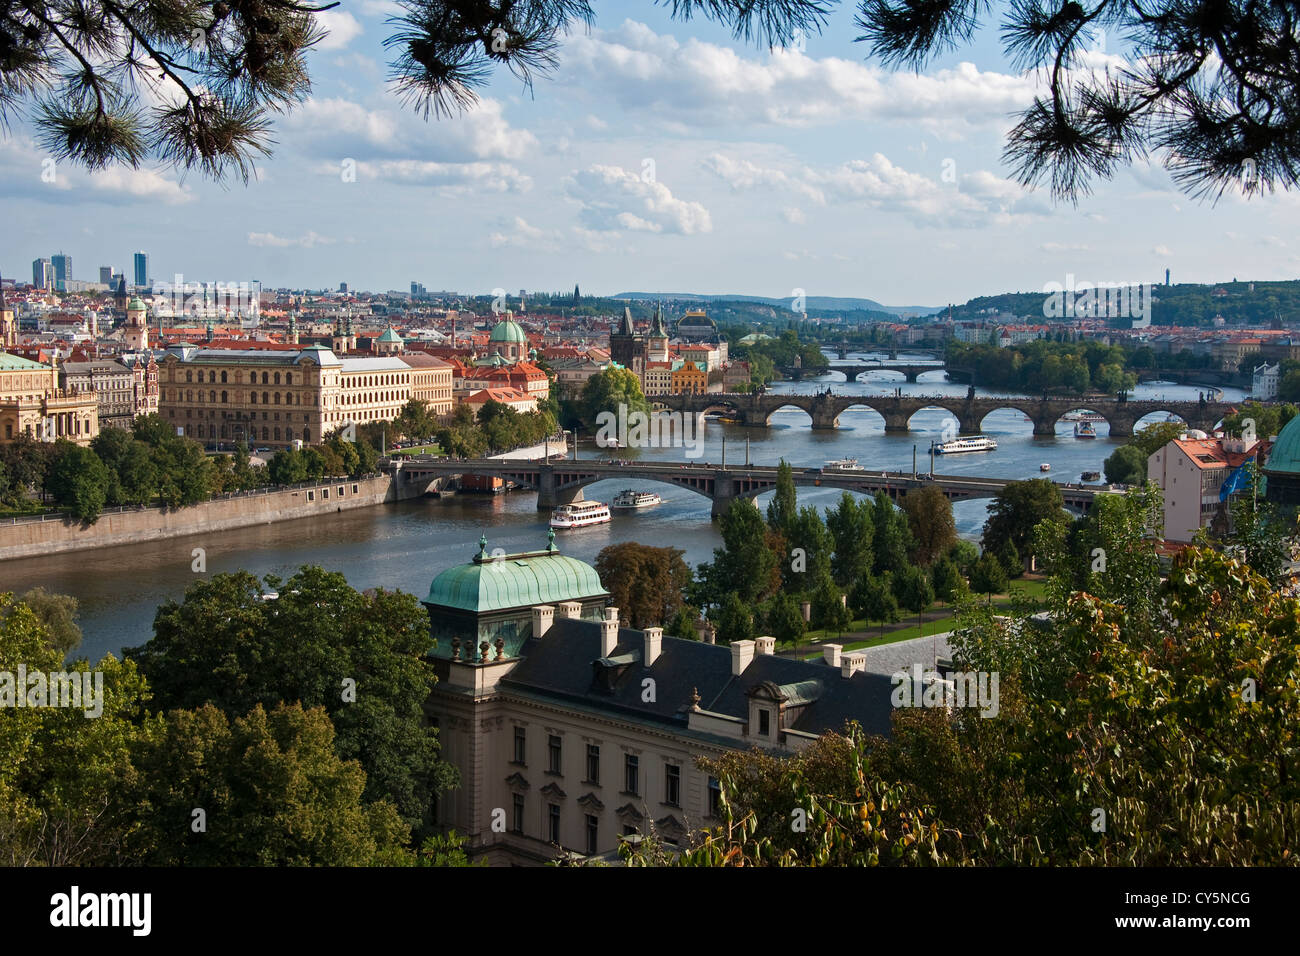 Overview of the Vltava River in Prague - Stock Image